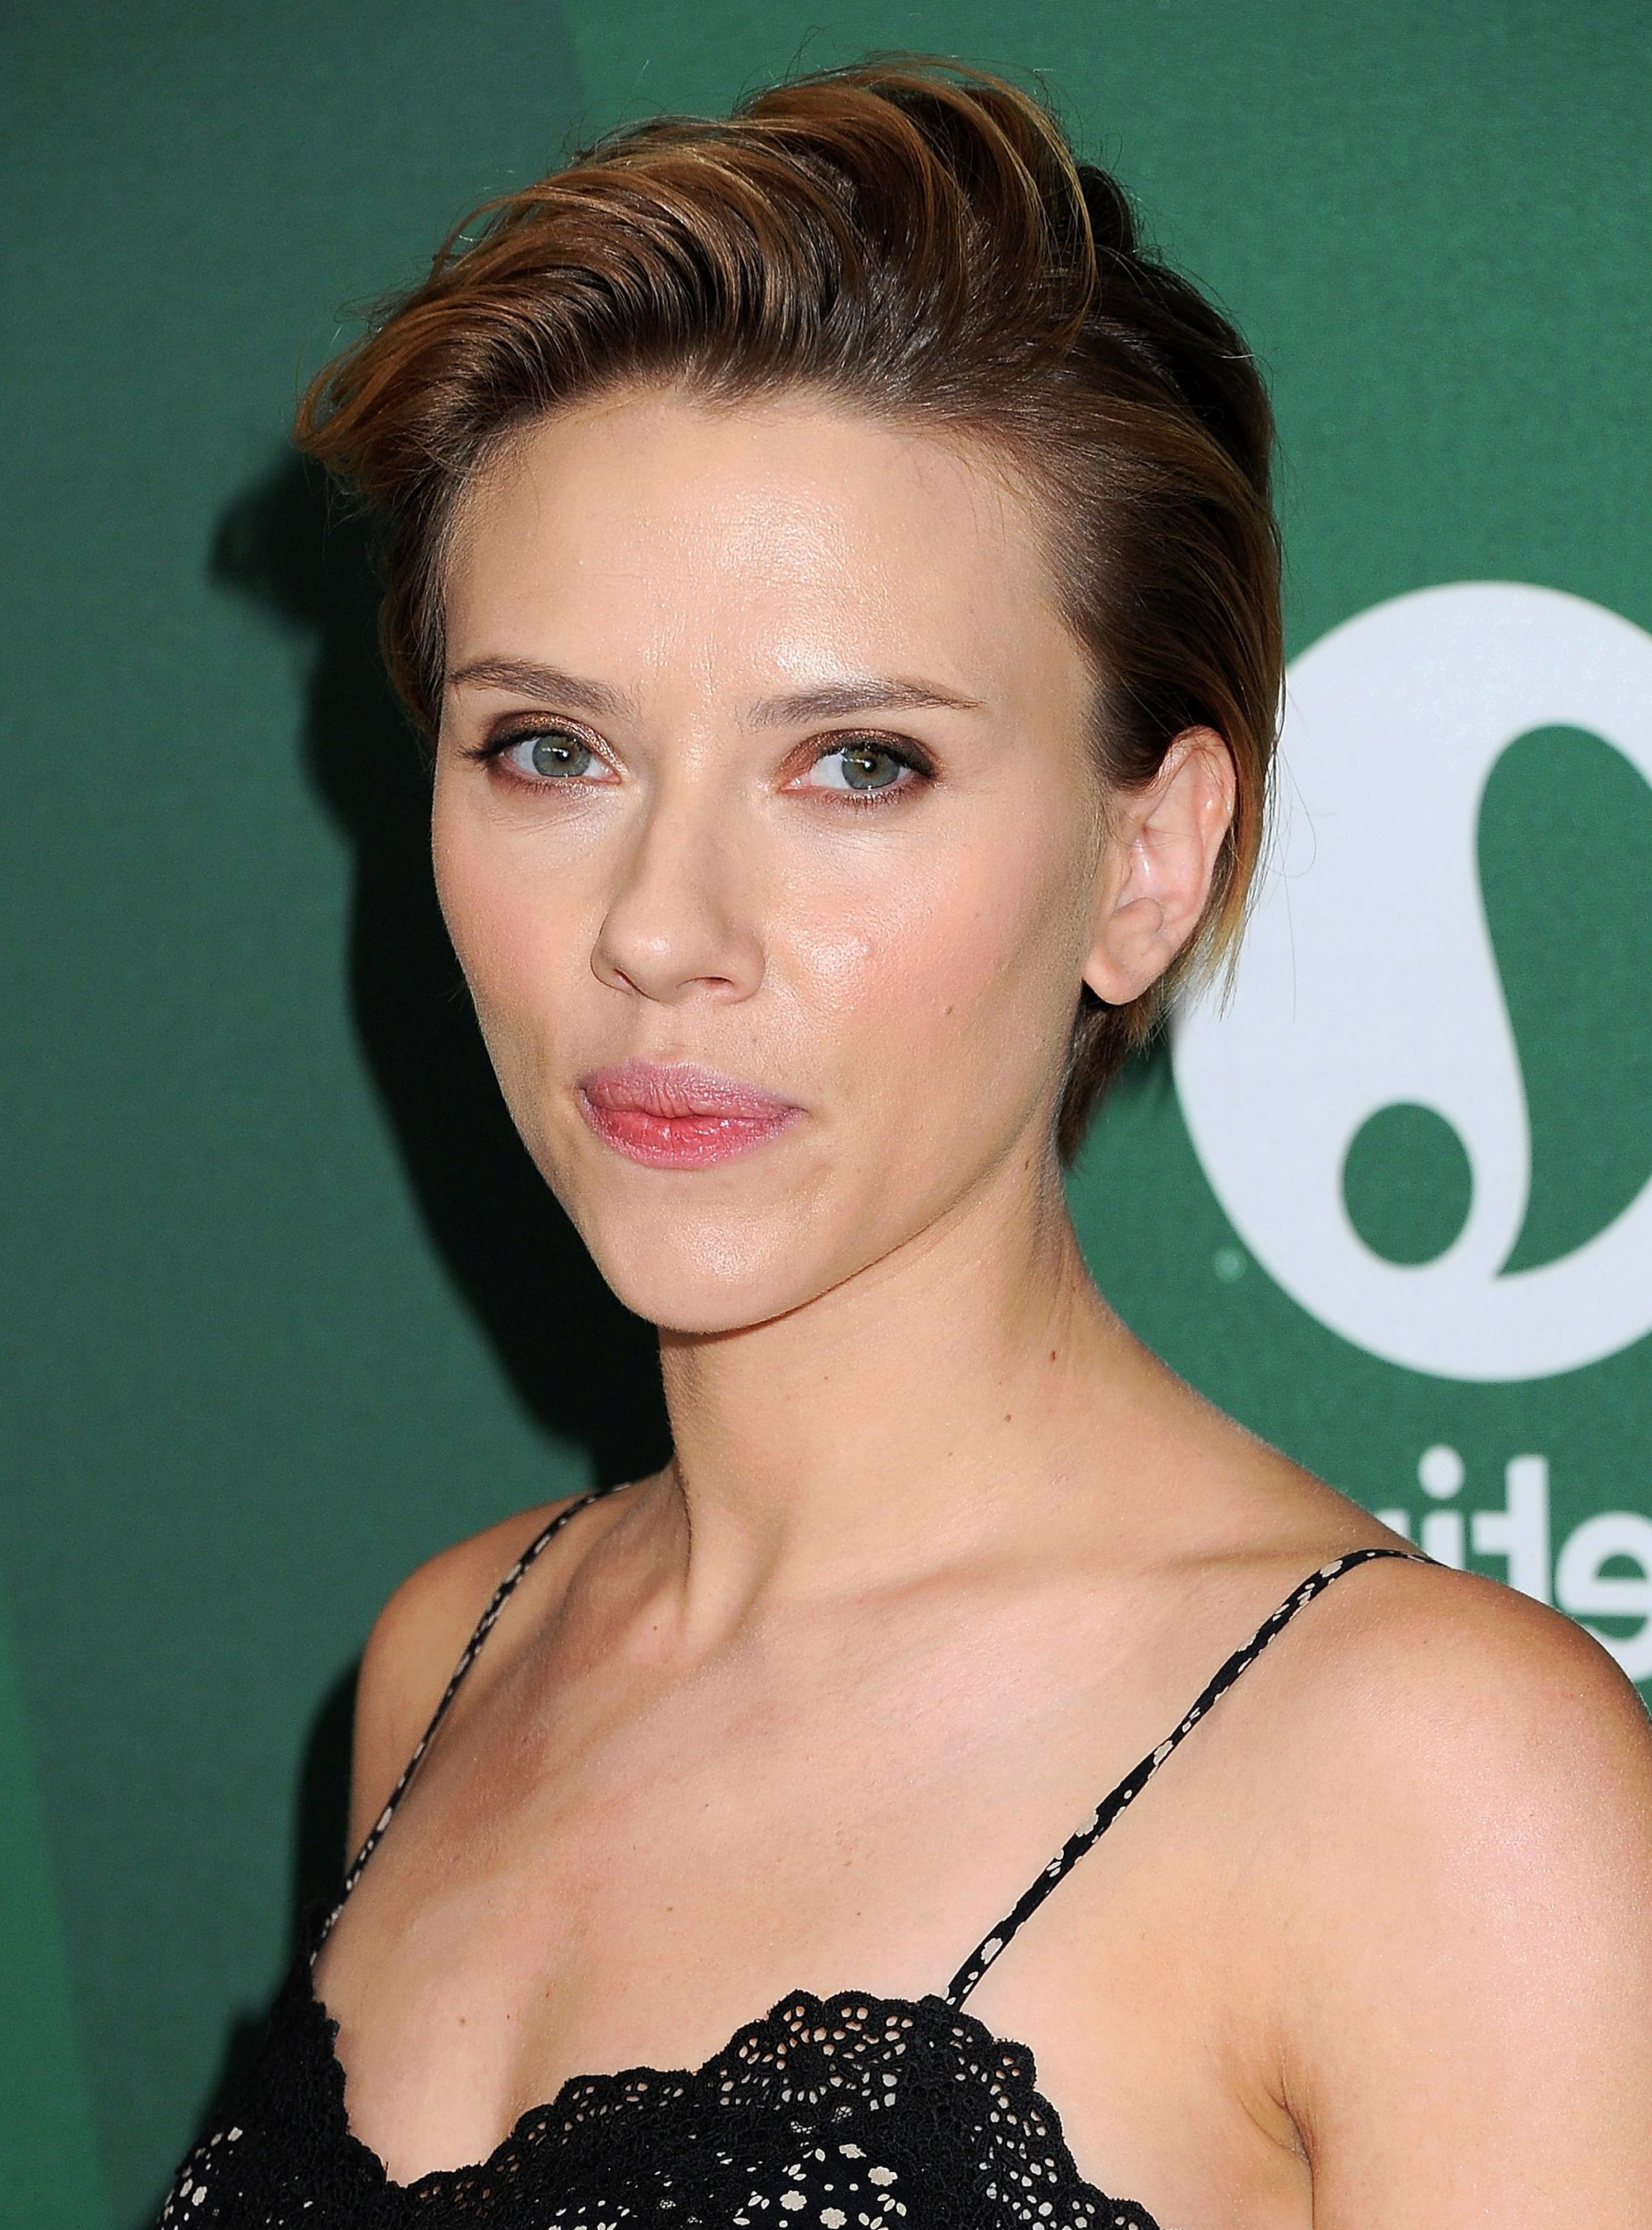 10 Ways To Rock Short Hair Like A Celebrity | Haircut | Pinterest With Regard To Scarlett Johansson Short Hairstyles (View 9 of 25)